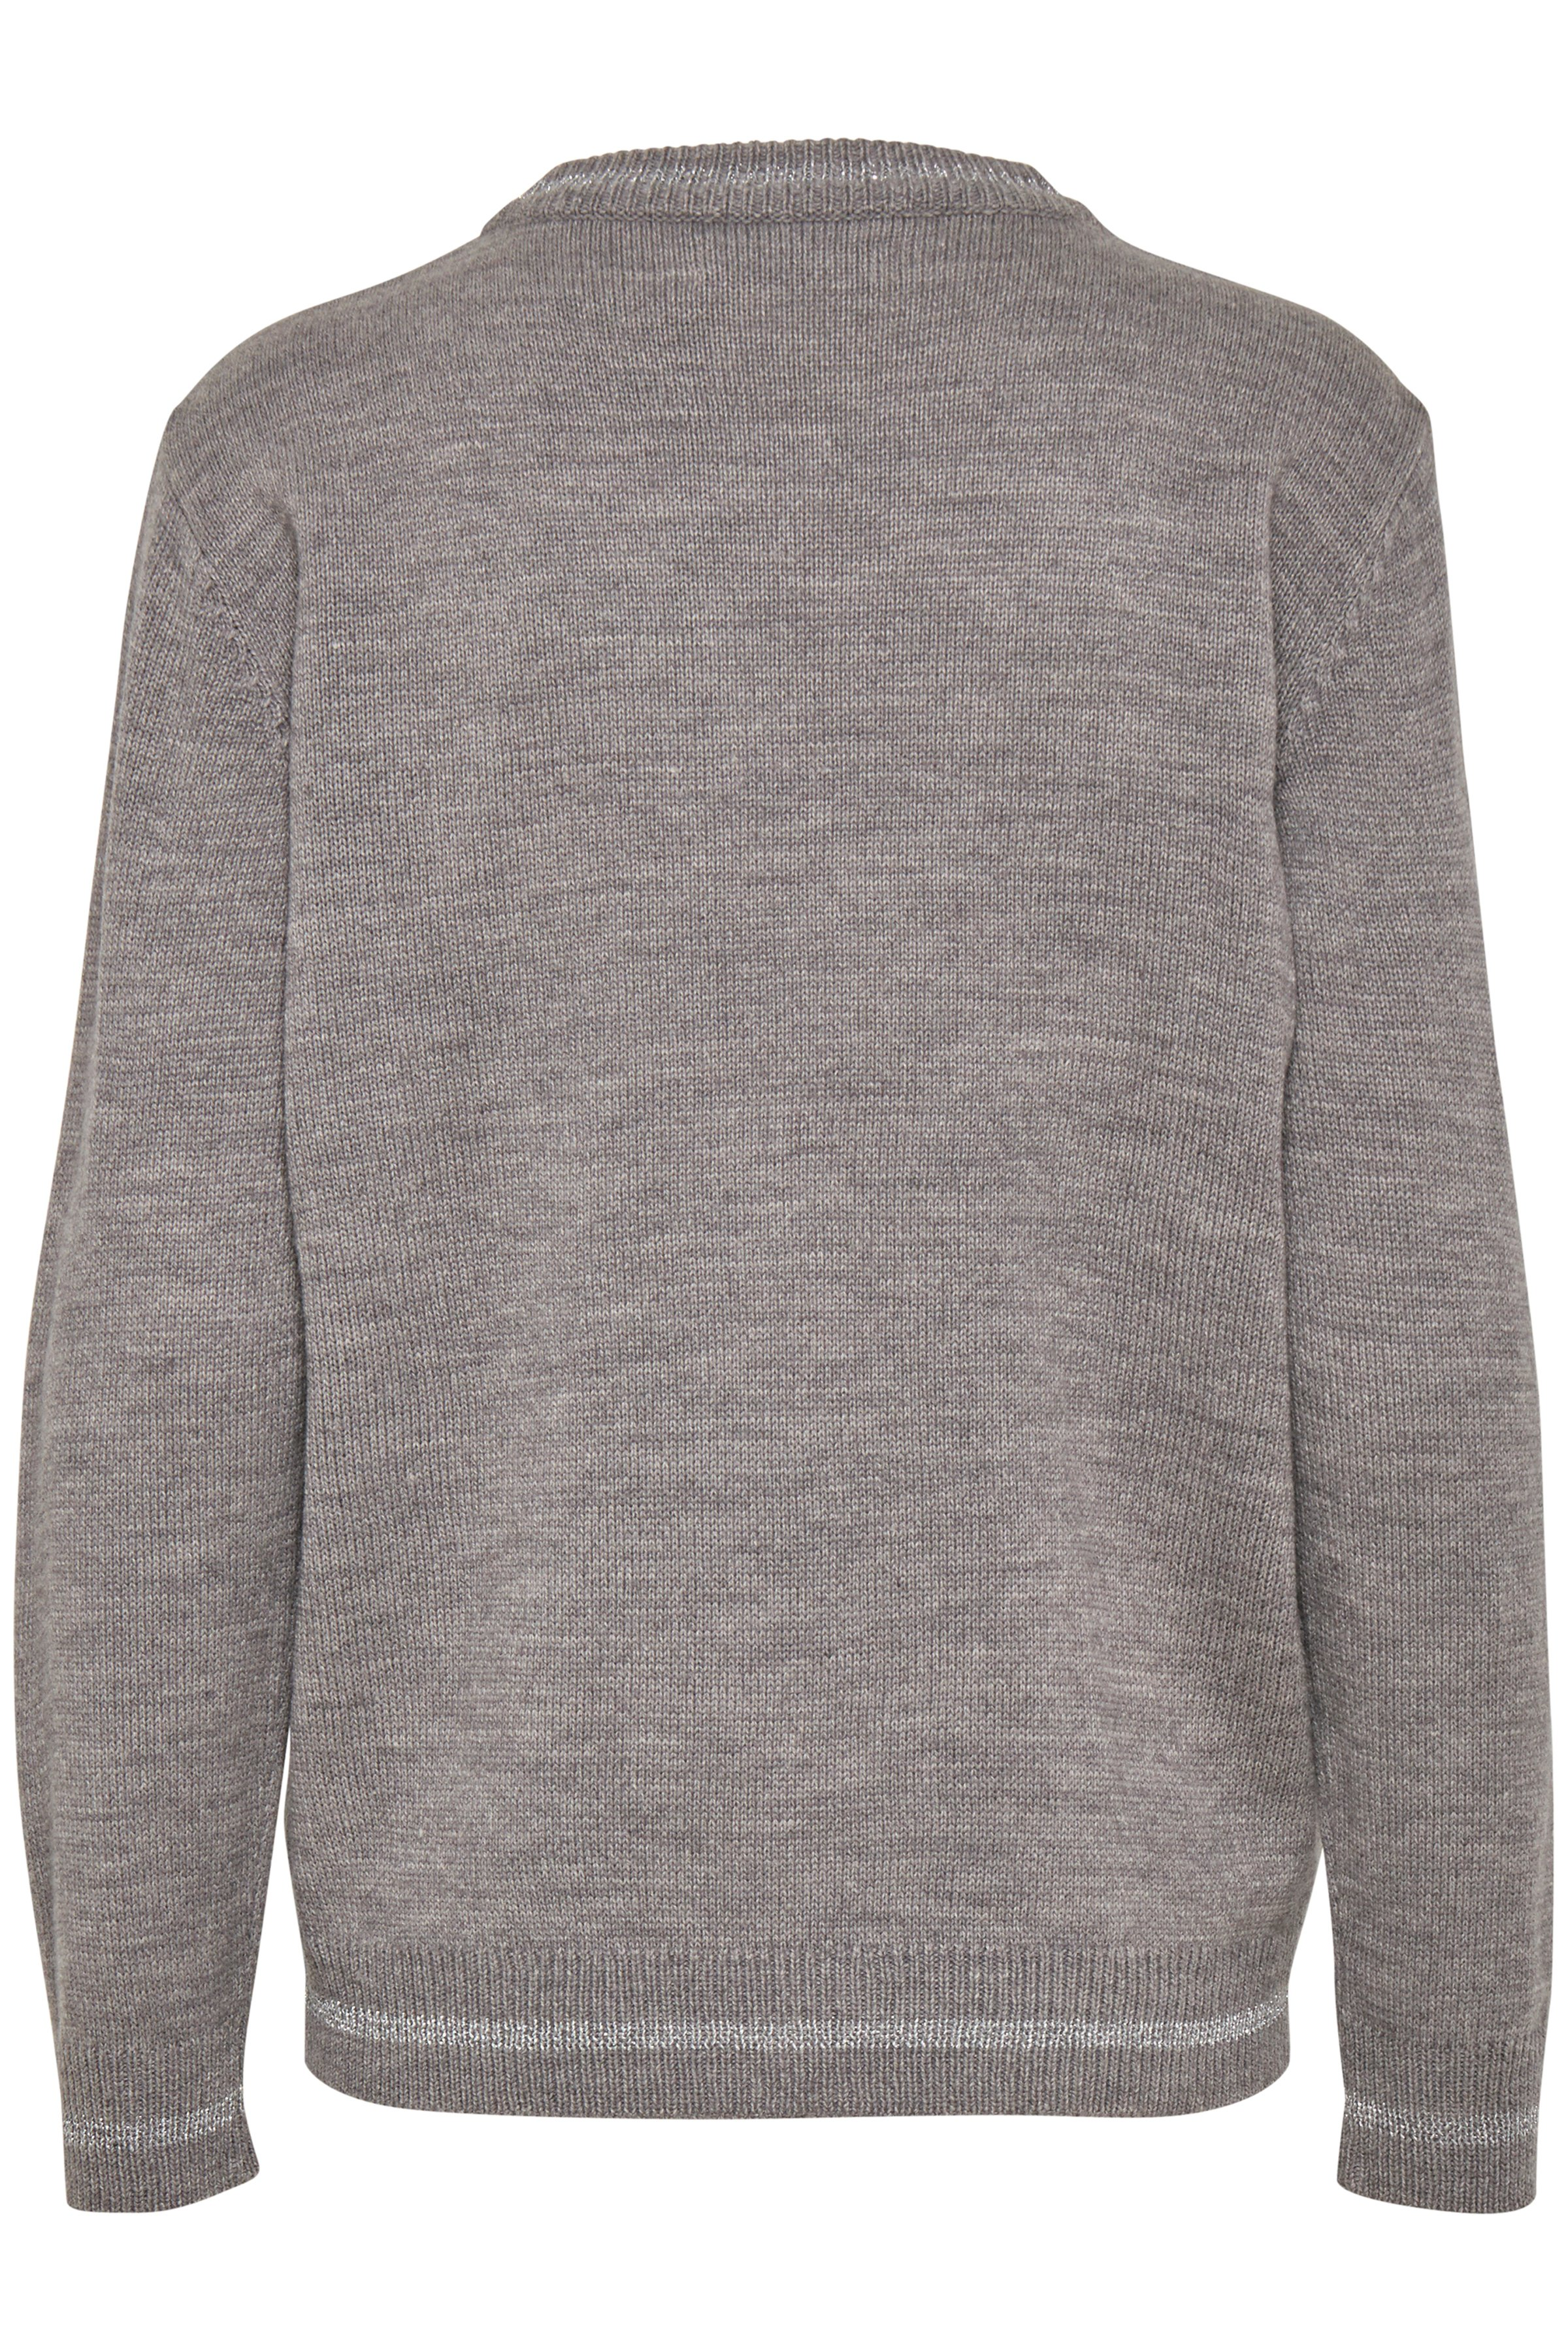 Med. Grey Mel. Combi 2 Knitted pullover from b.young – Buy Med. Grey Mel. Combi 2 Knitted pullover from size XS-XXL here